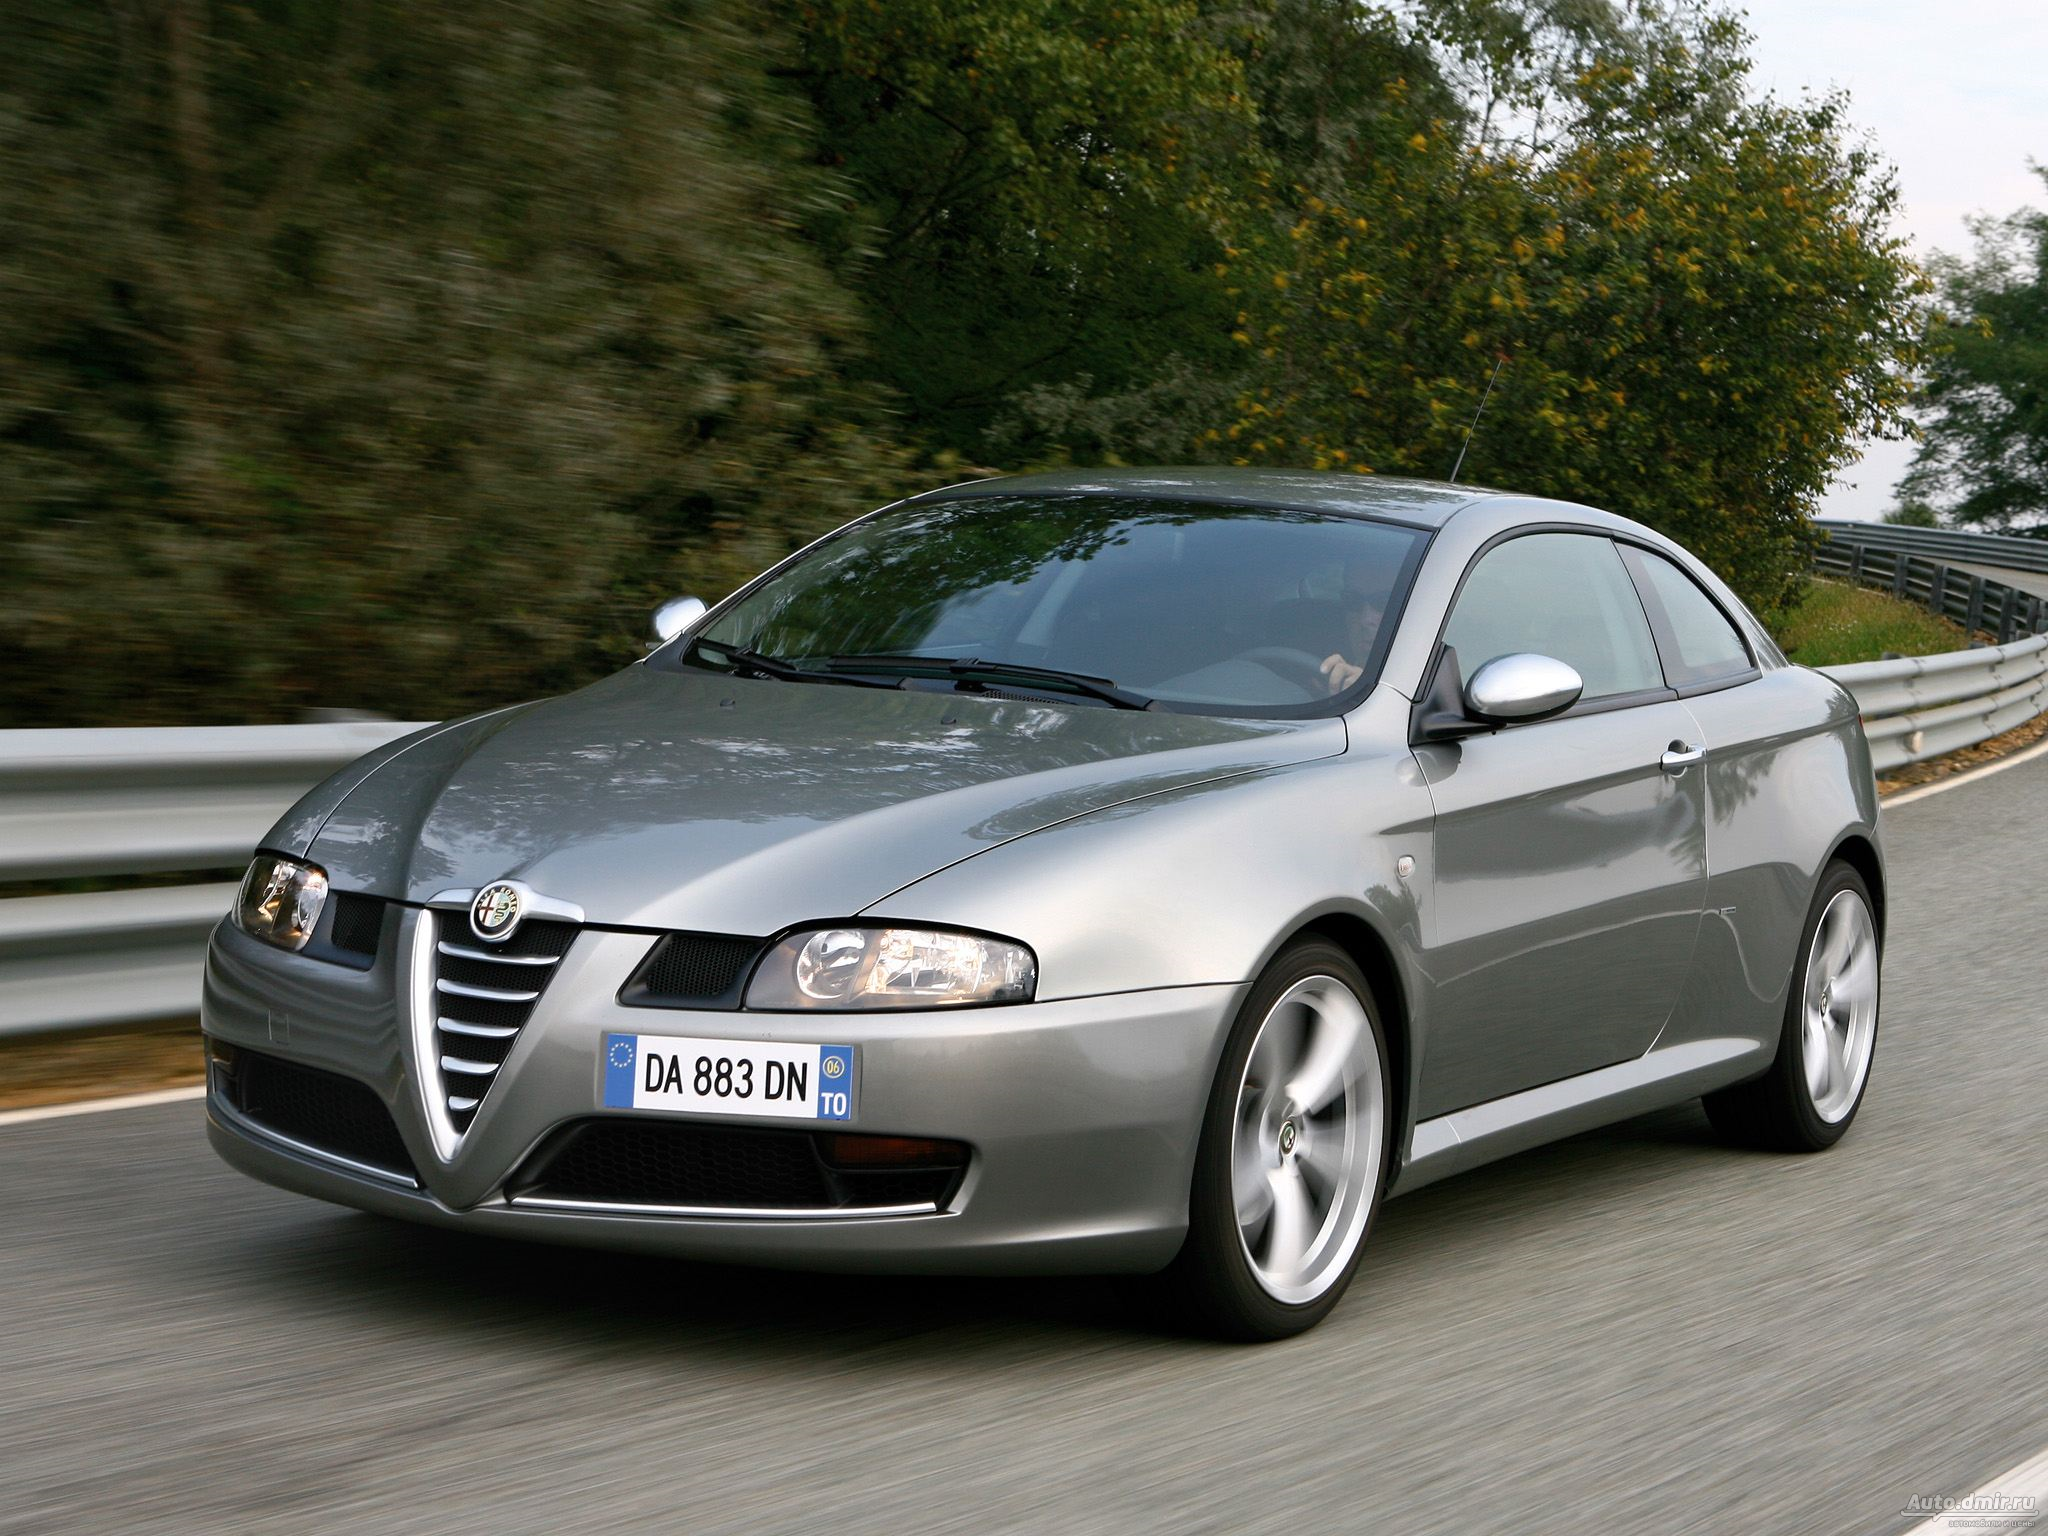 Alfa romeo gt photo - 4